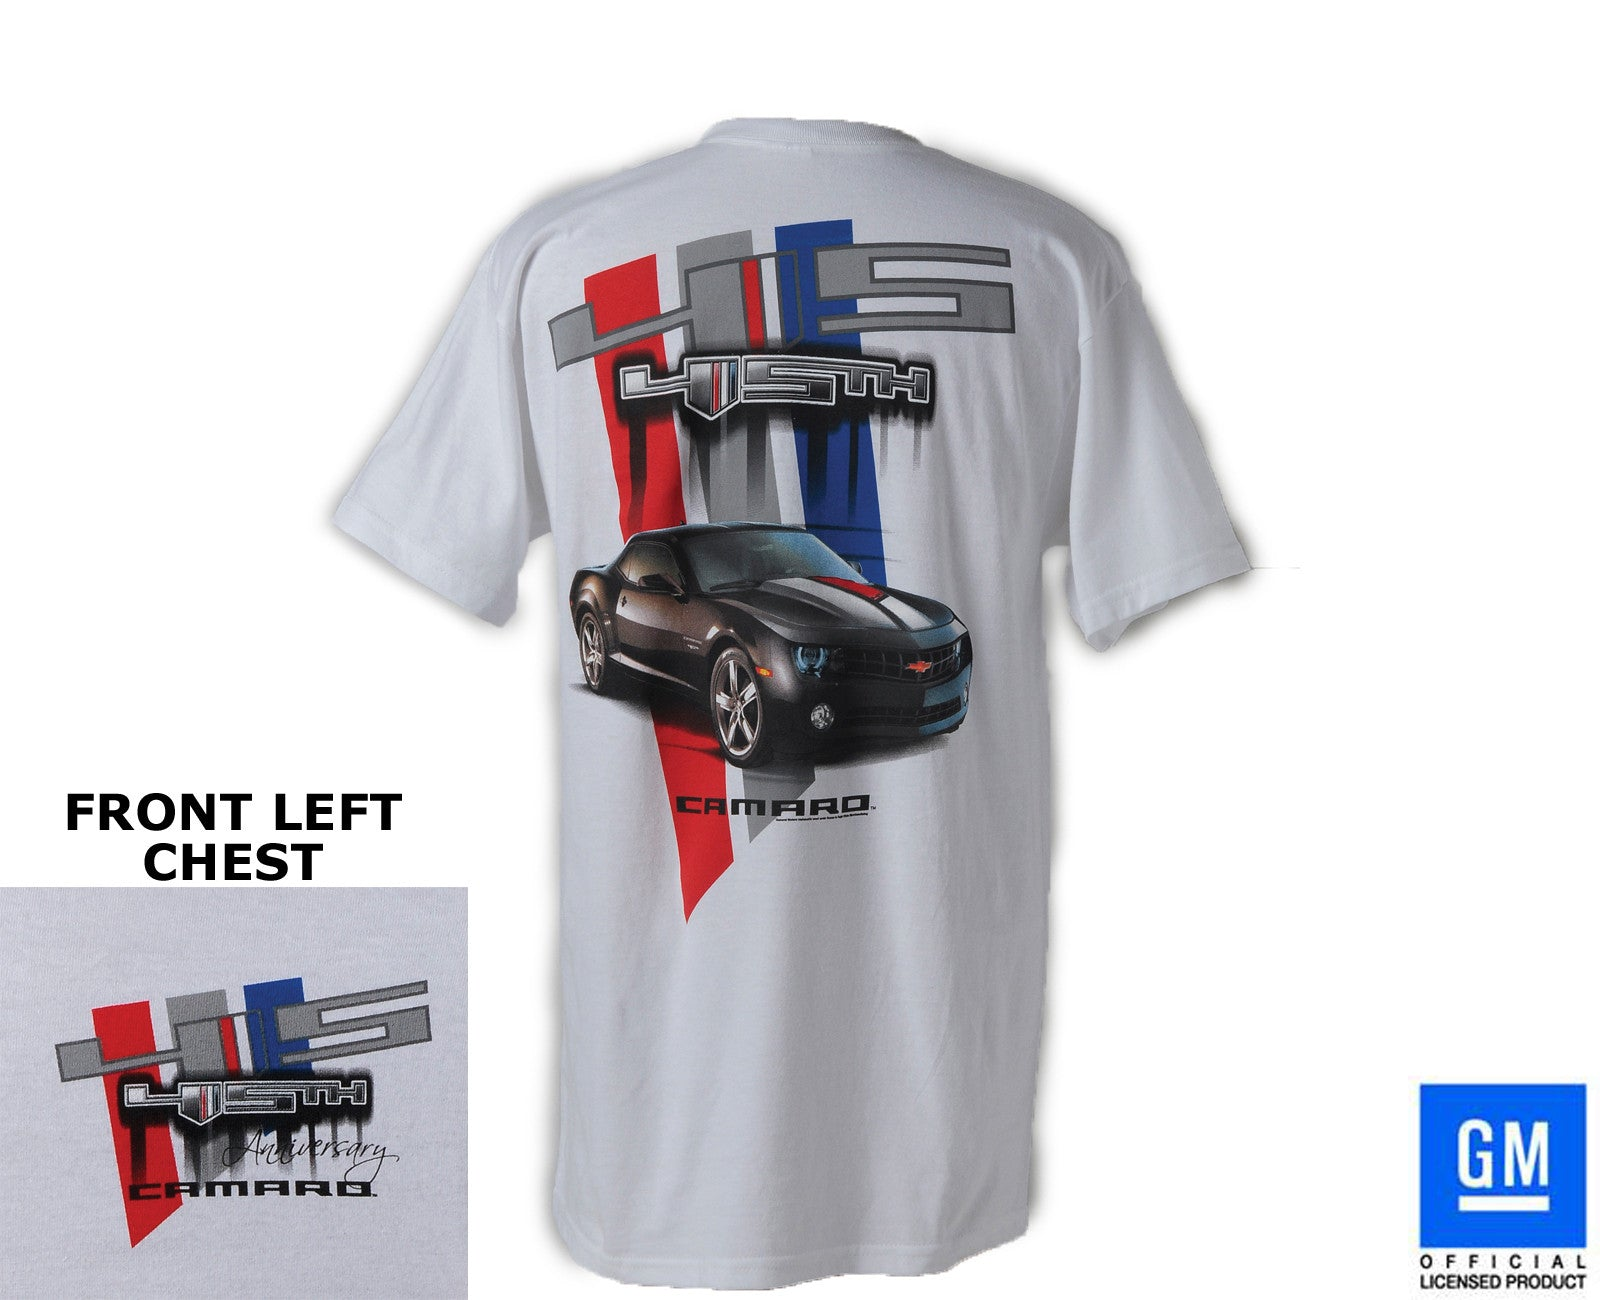 45TH ANNIVERSARY CAMARO T-SHIRT